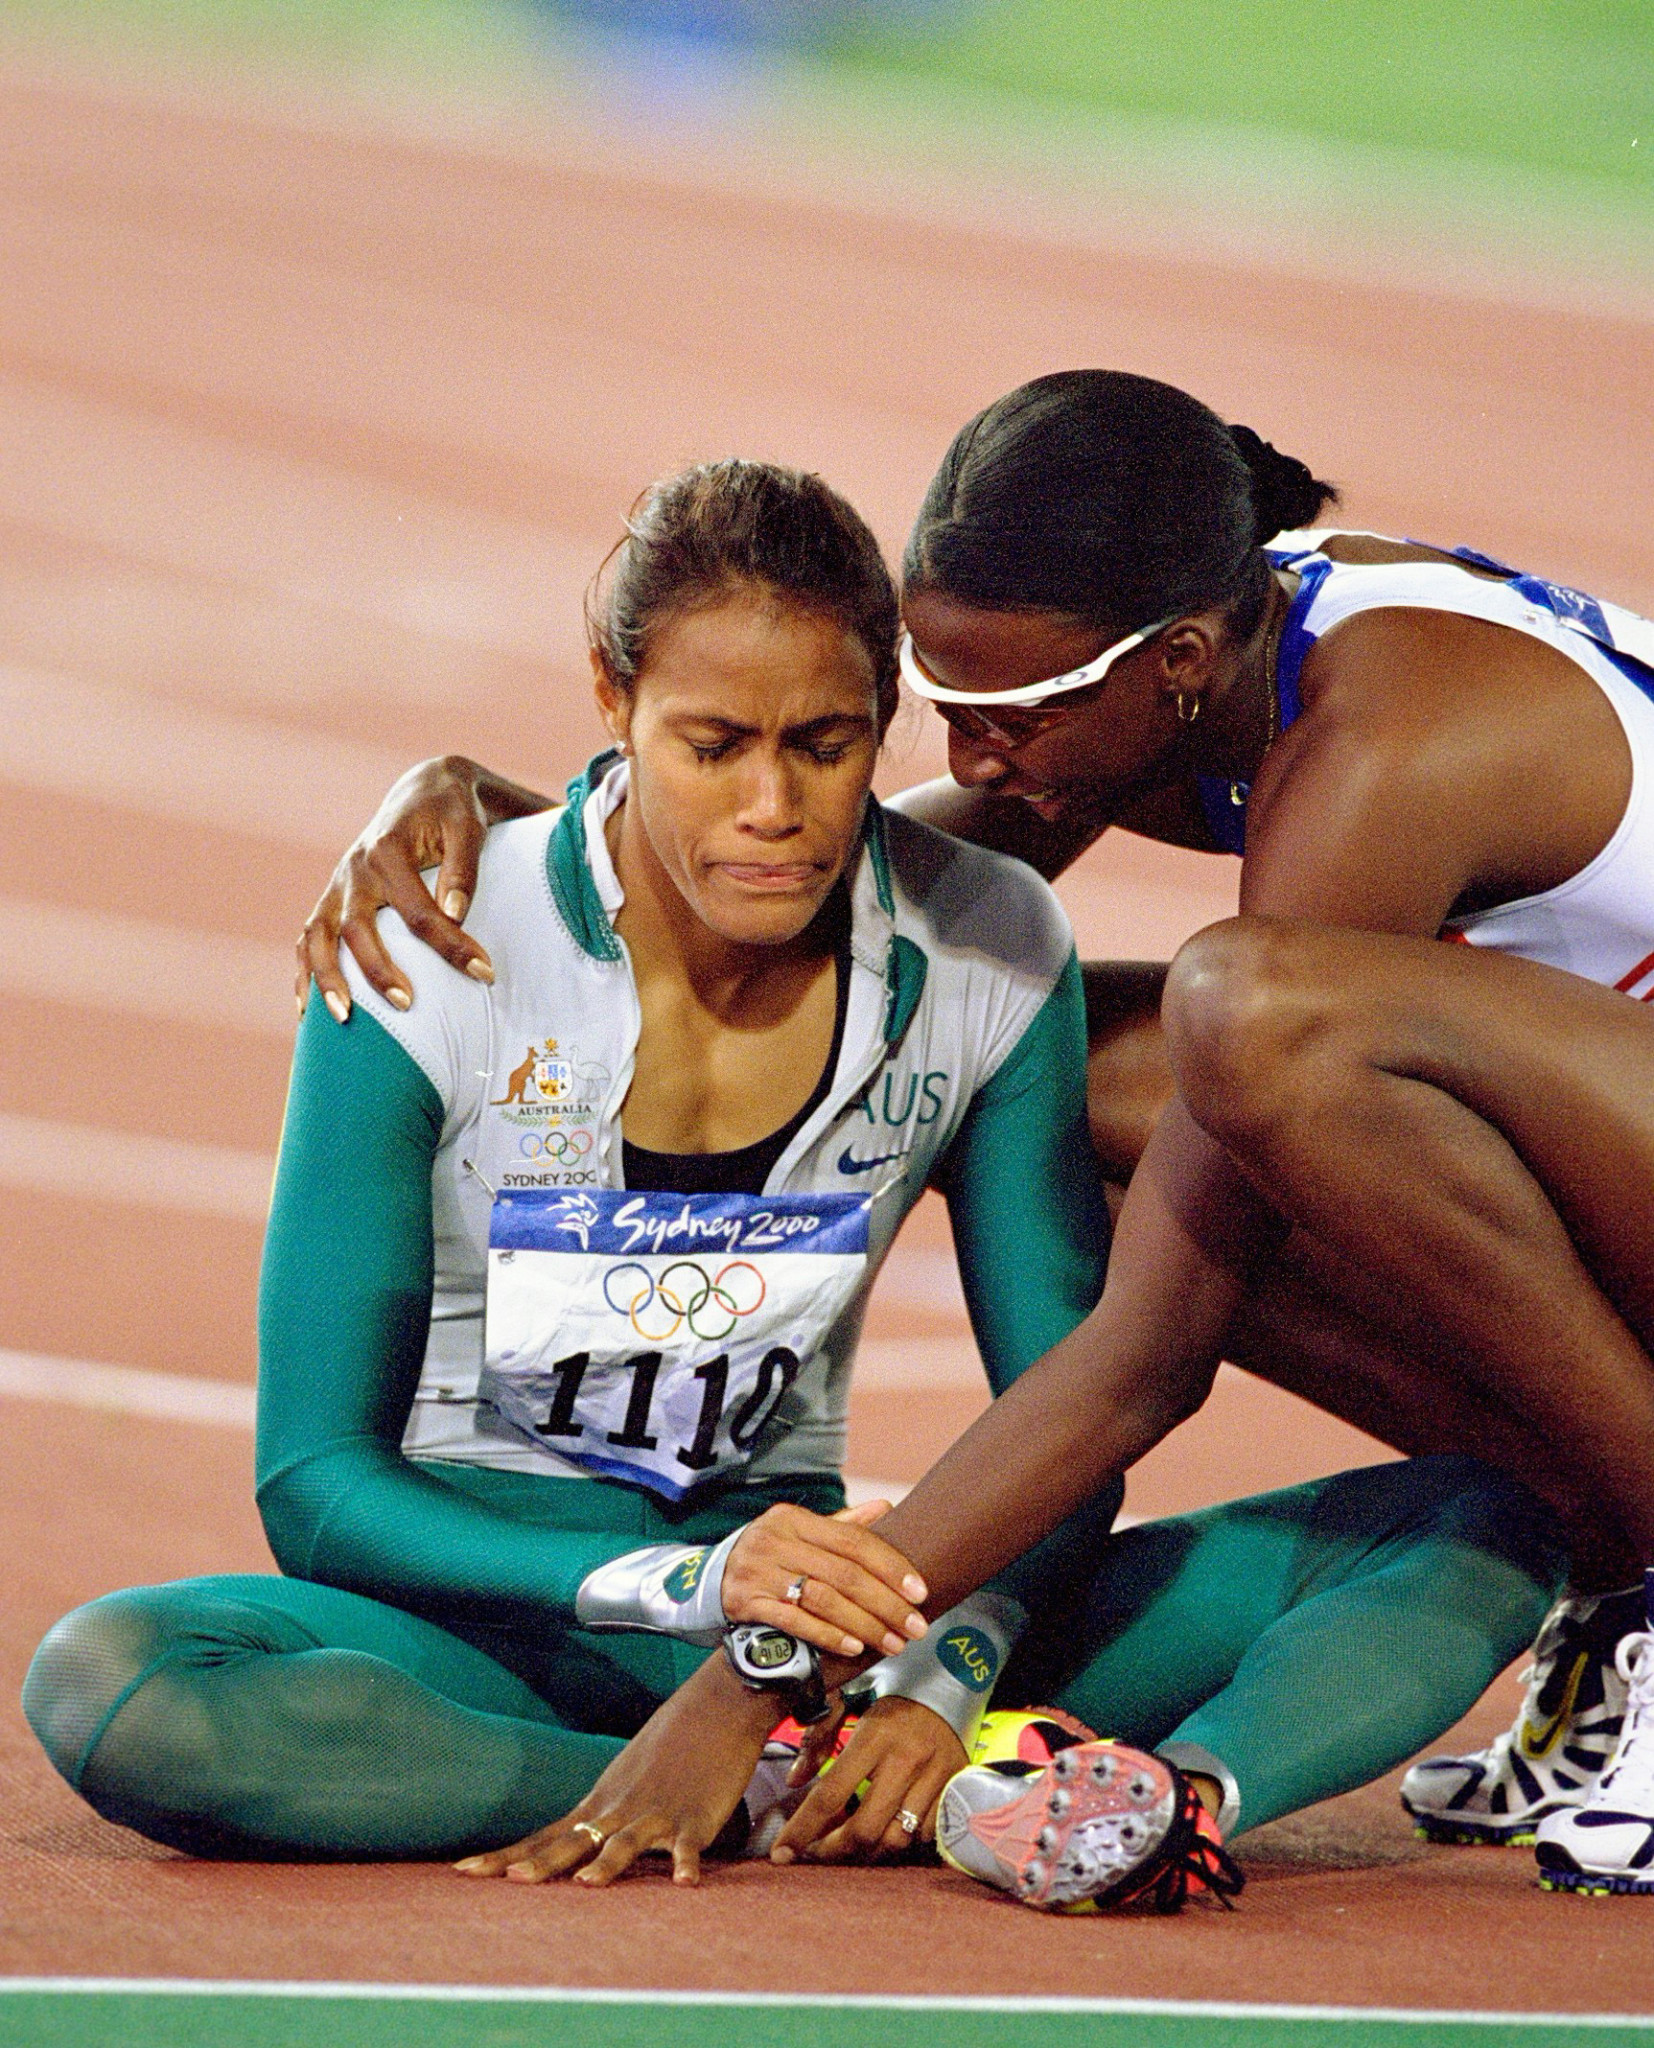 Britain's fourth-placed Donna Fraser was the first to congratulate a stunned Cathy Freeman after she had fulfilled her destiny and won the Olympic 400m gold medal at Sydney 2000 ©Getty Images